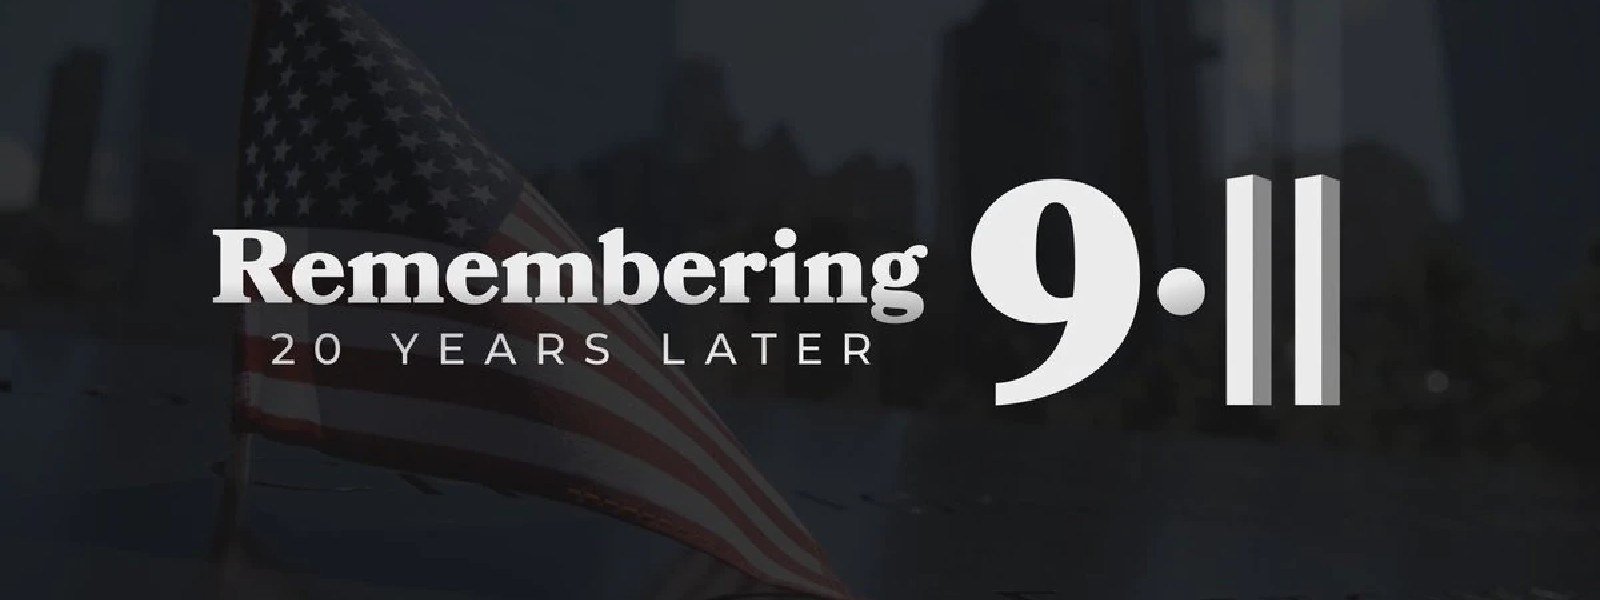 Sri Lanka expresses solidarity to the US on 20th Anniversary of 9/11